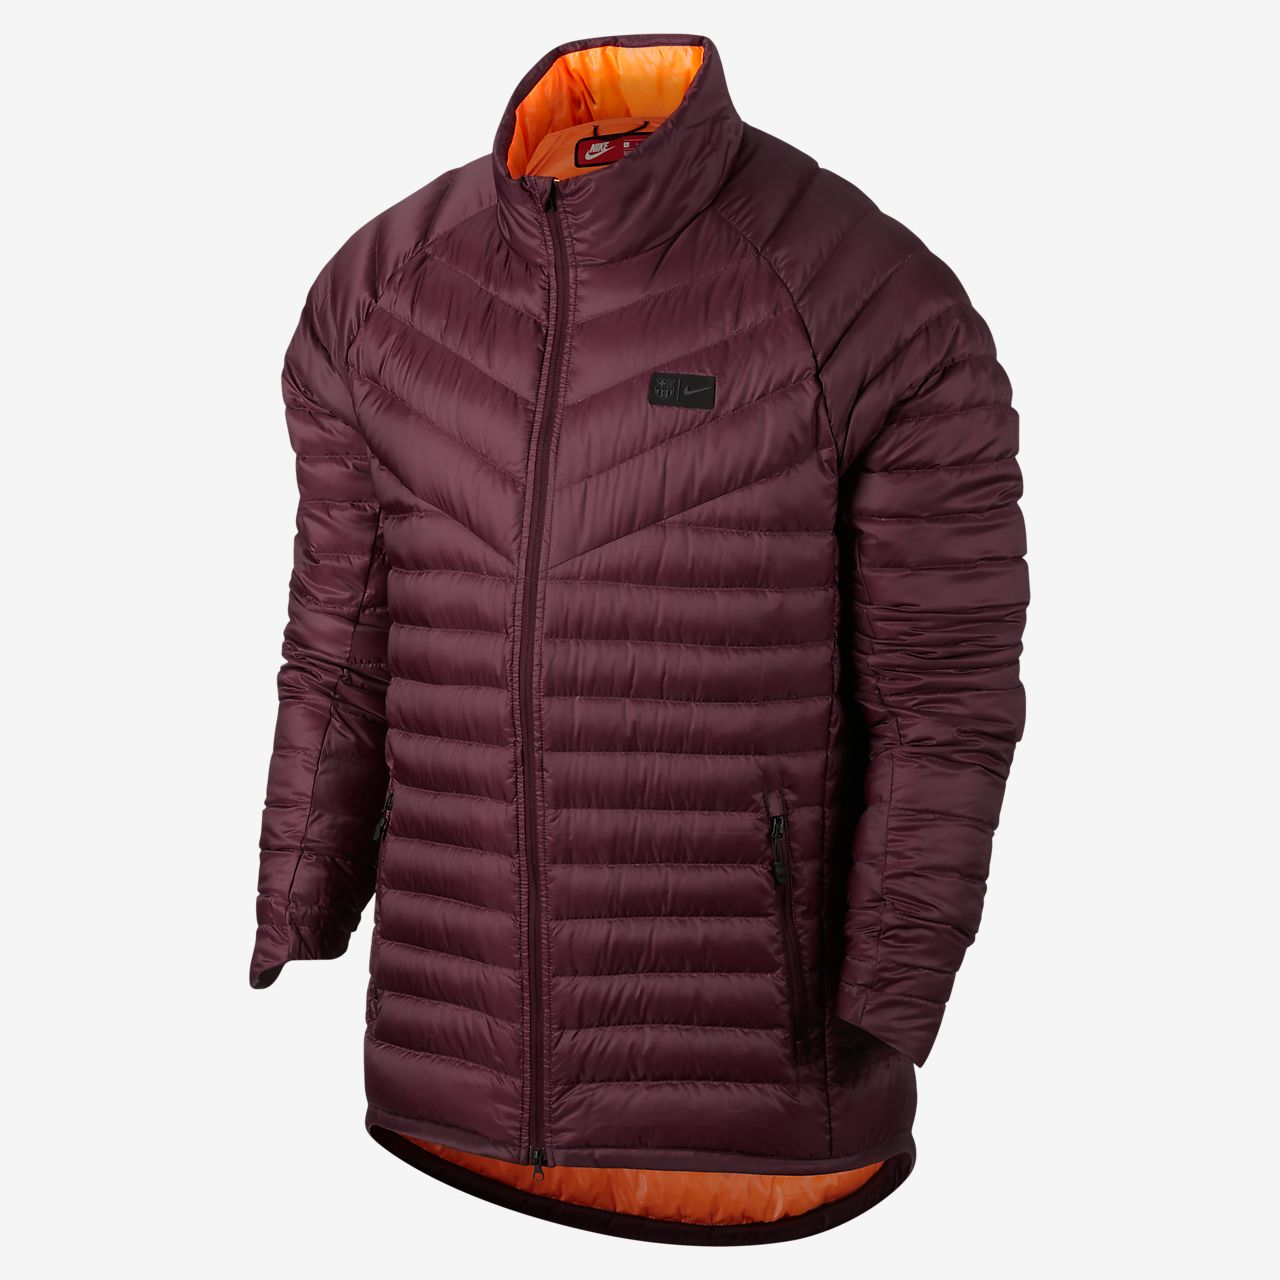 FC Barcelona Authentic Men's Down Jacket